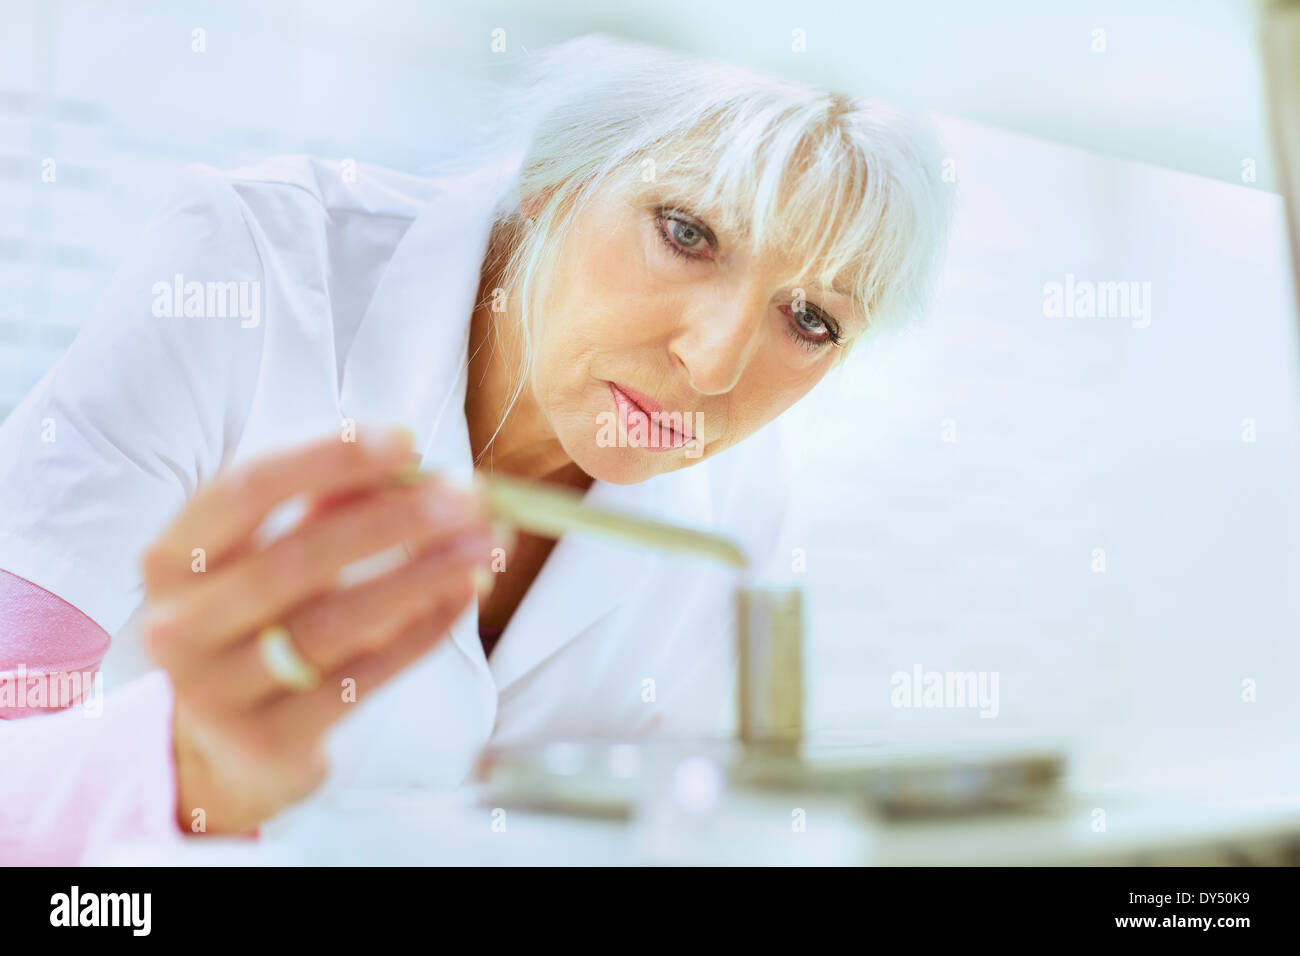 Female pharmacist weighing medicines for prescription - Stock Image